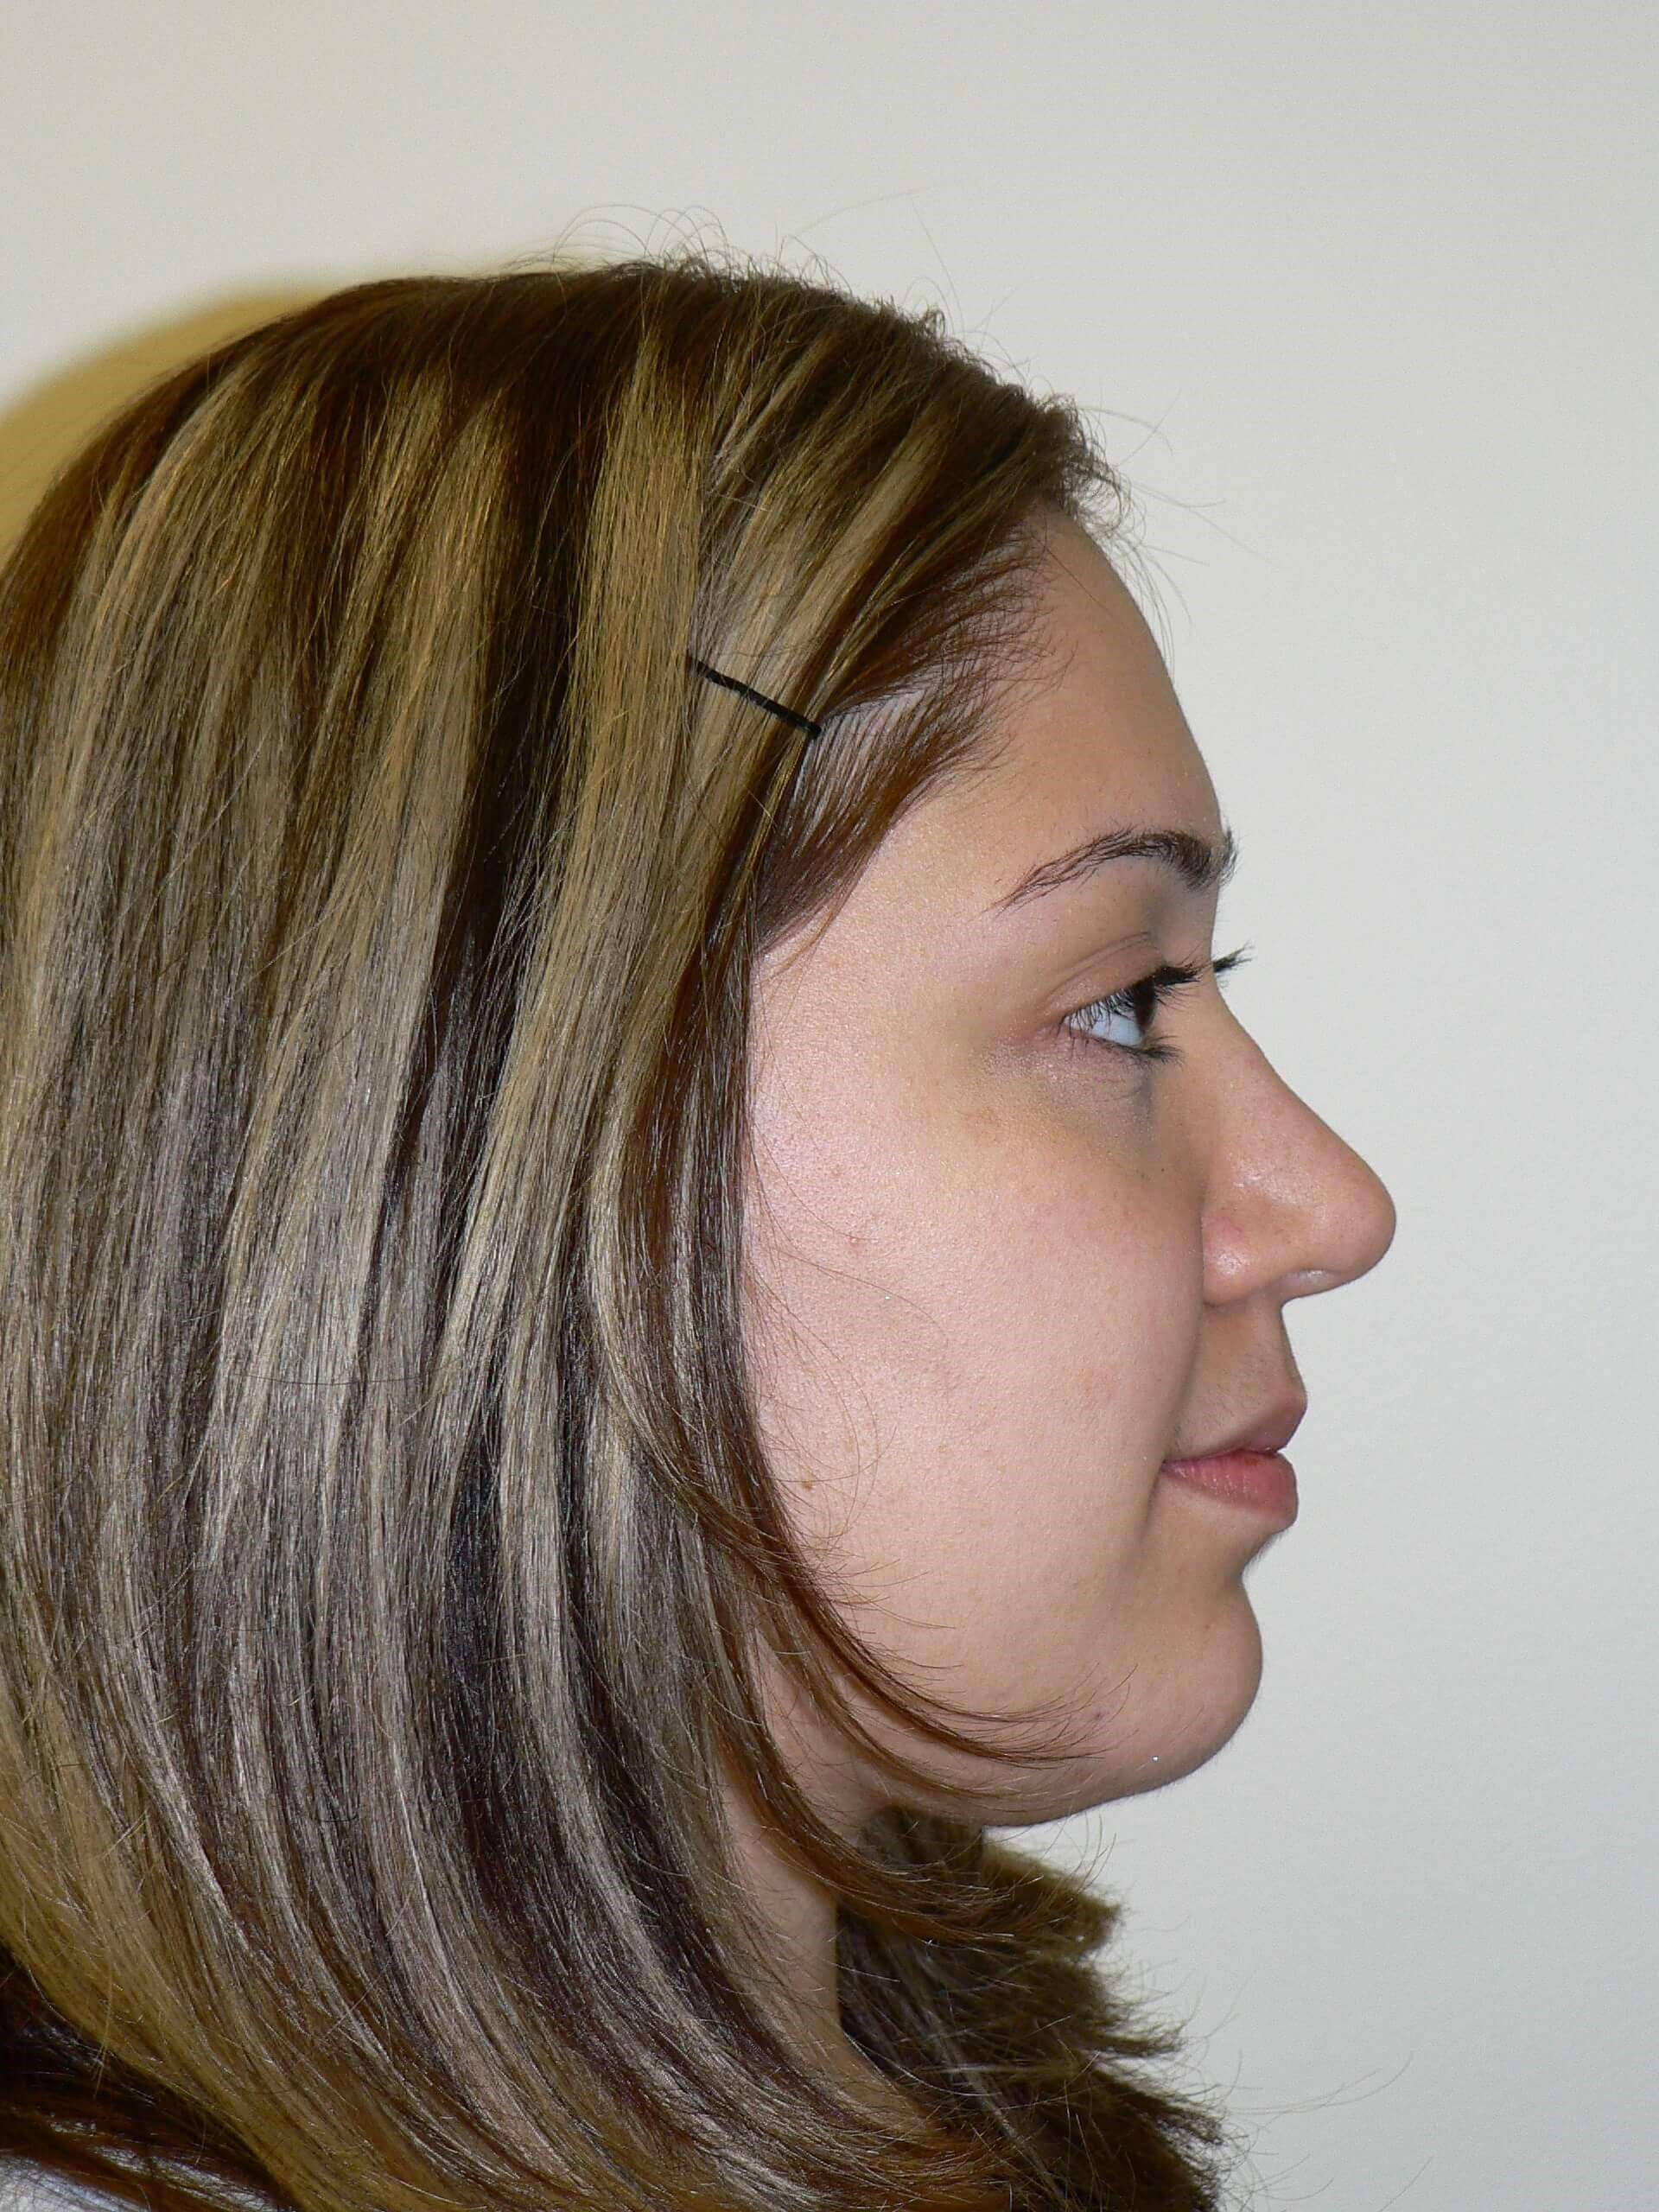 Ethnic Tip Rhinoplasty Denver After